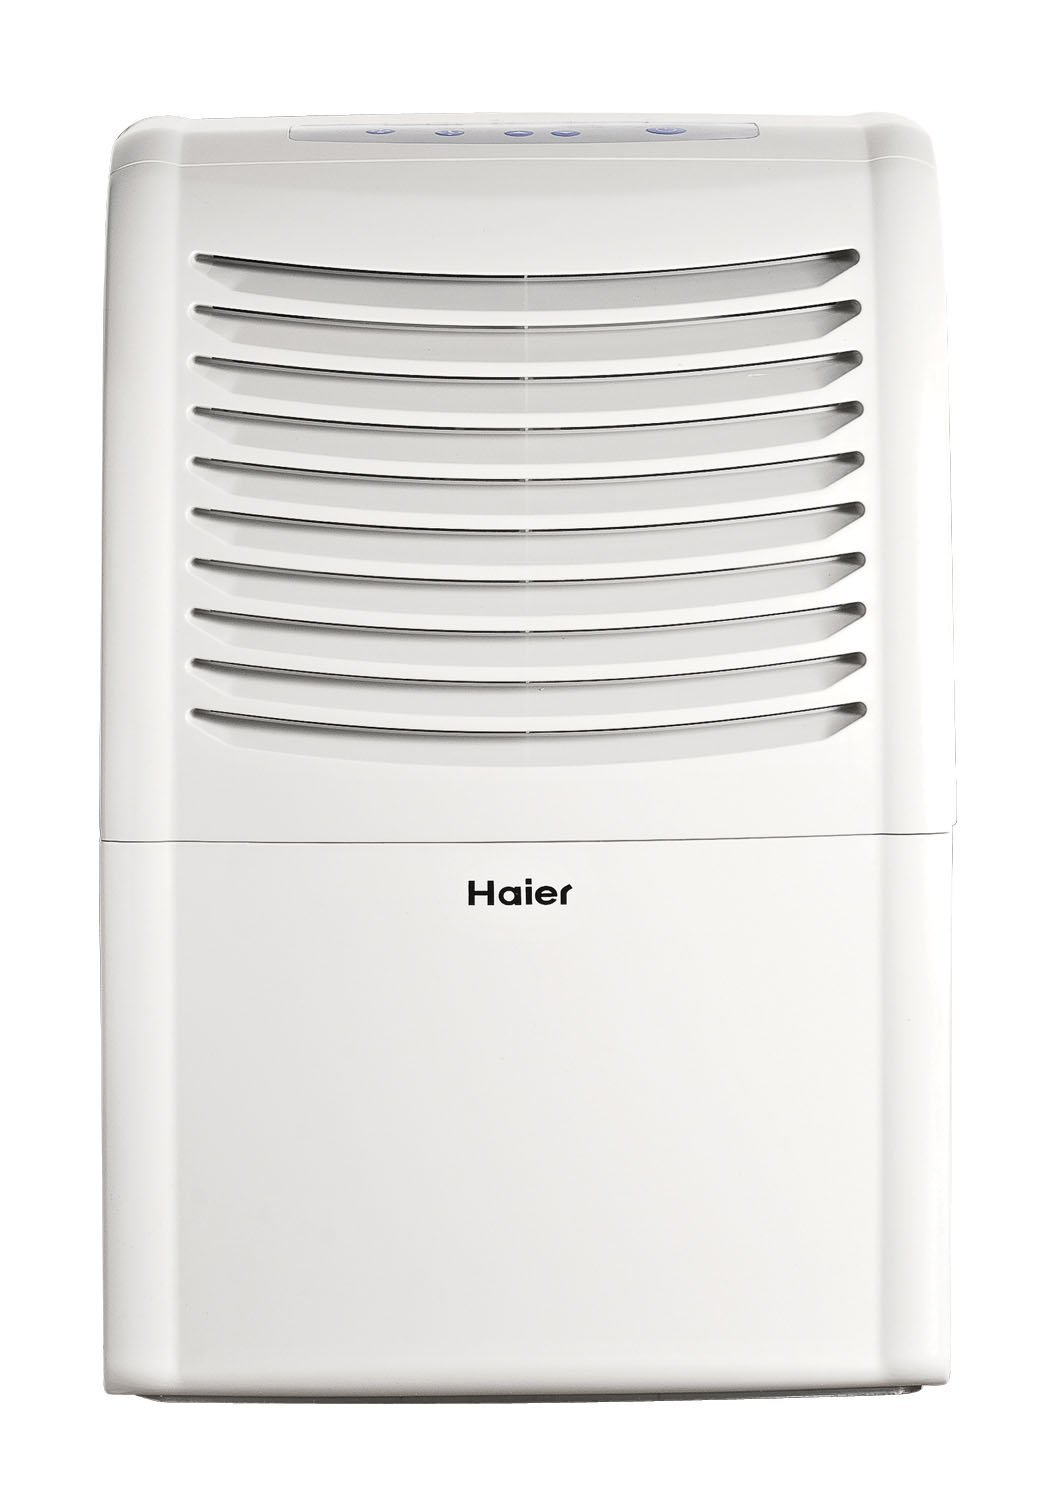 dehumidifier reviews Haier DM30EJ T 30 Pint Mechanical Dehumidifier #585A73